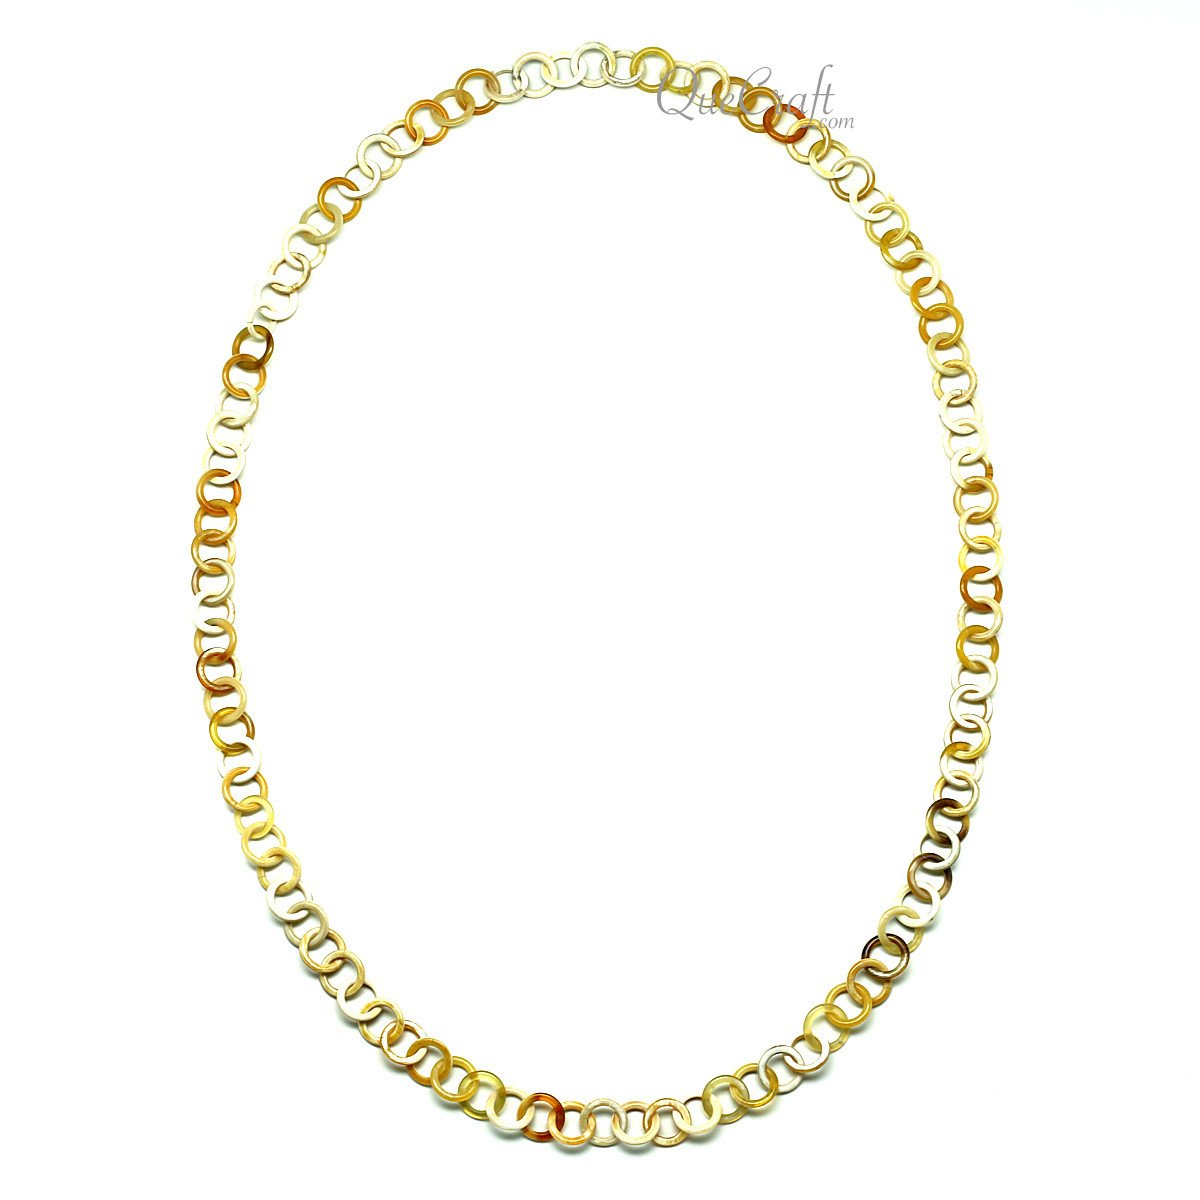 Horn Chain Necklace #11914 - HORN.JEWELRY by QueCraft